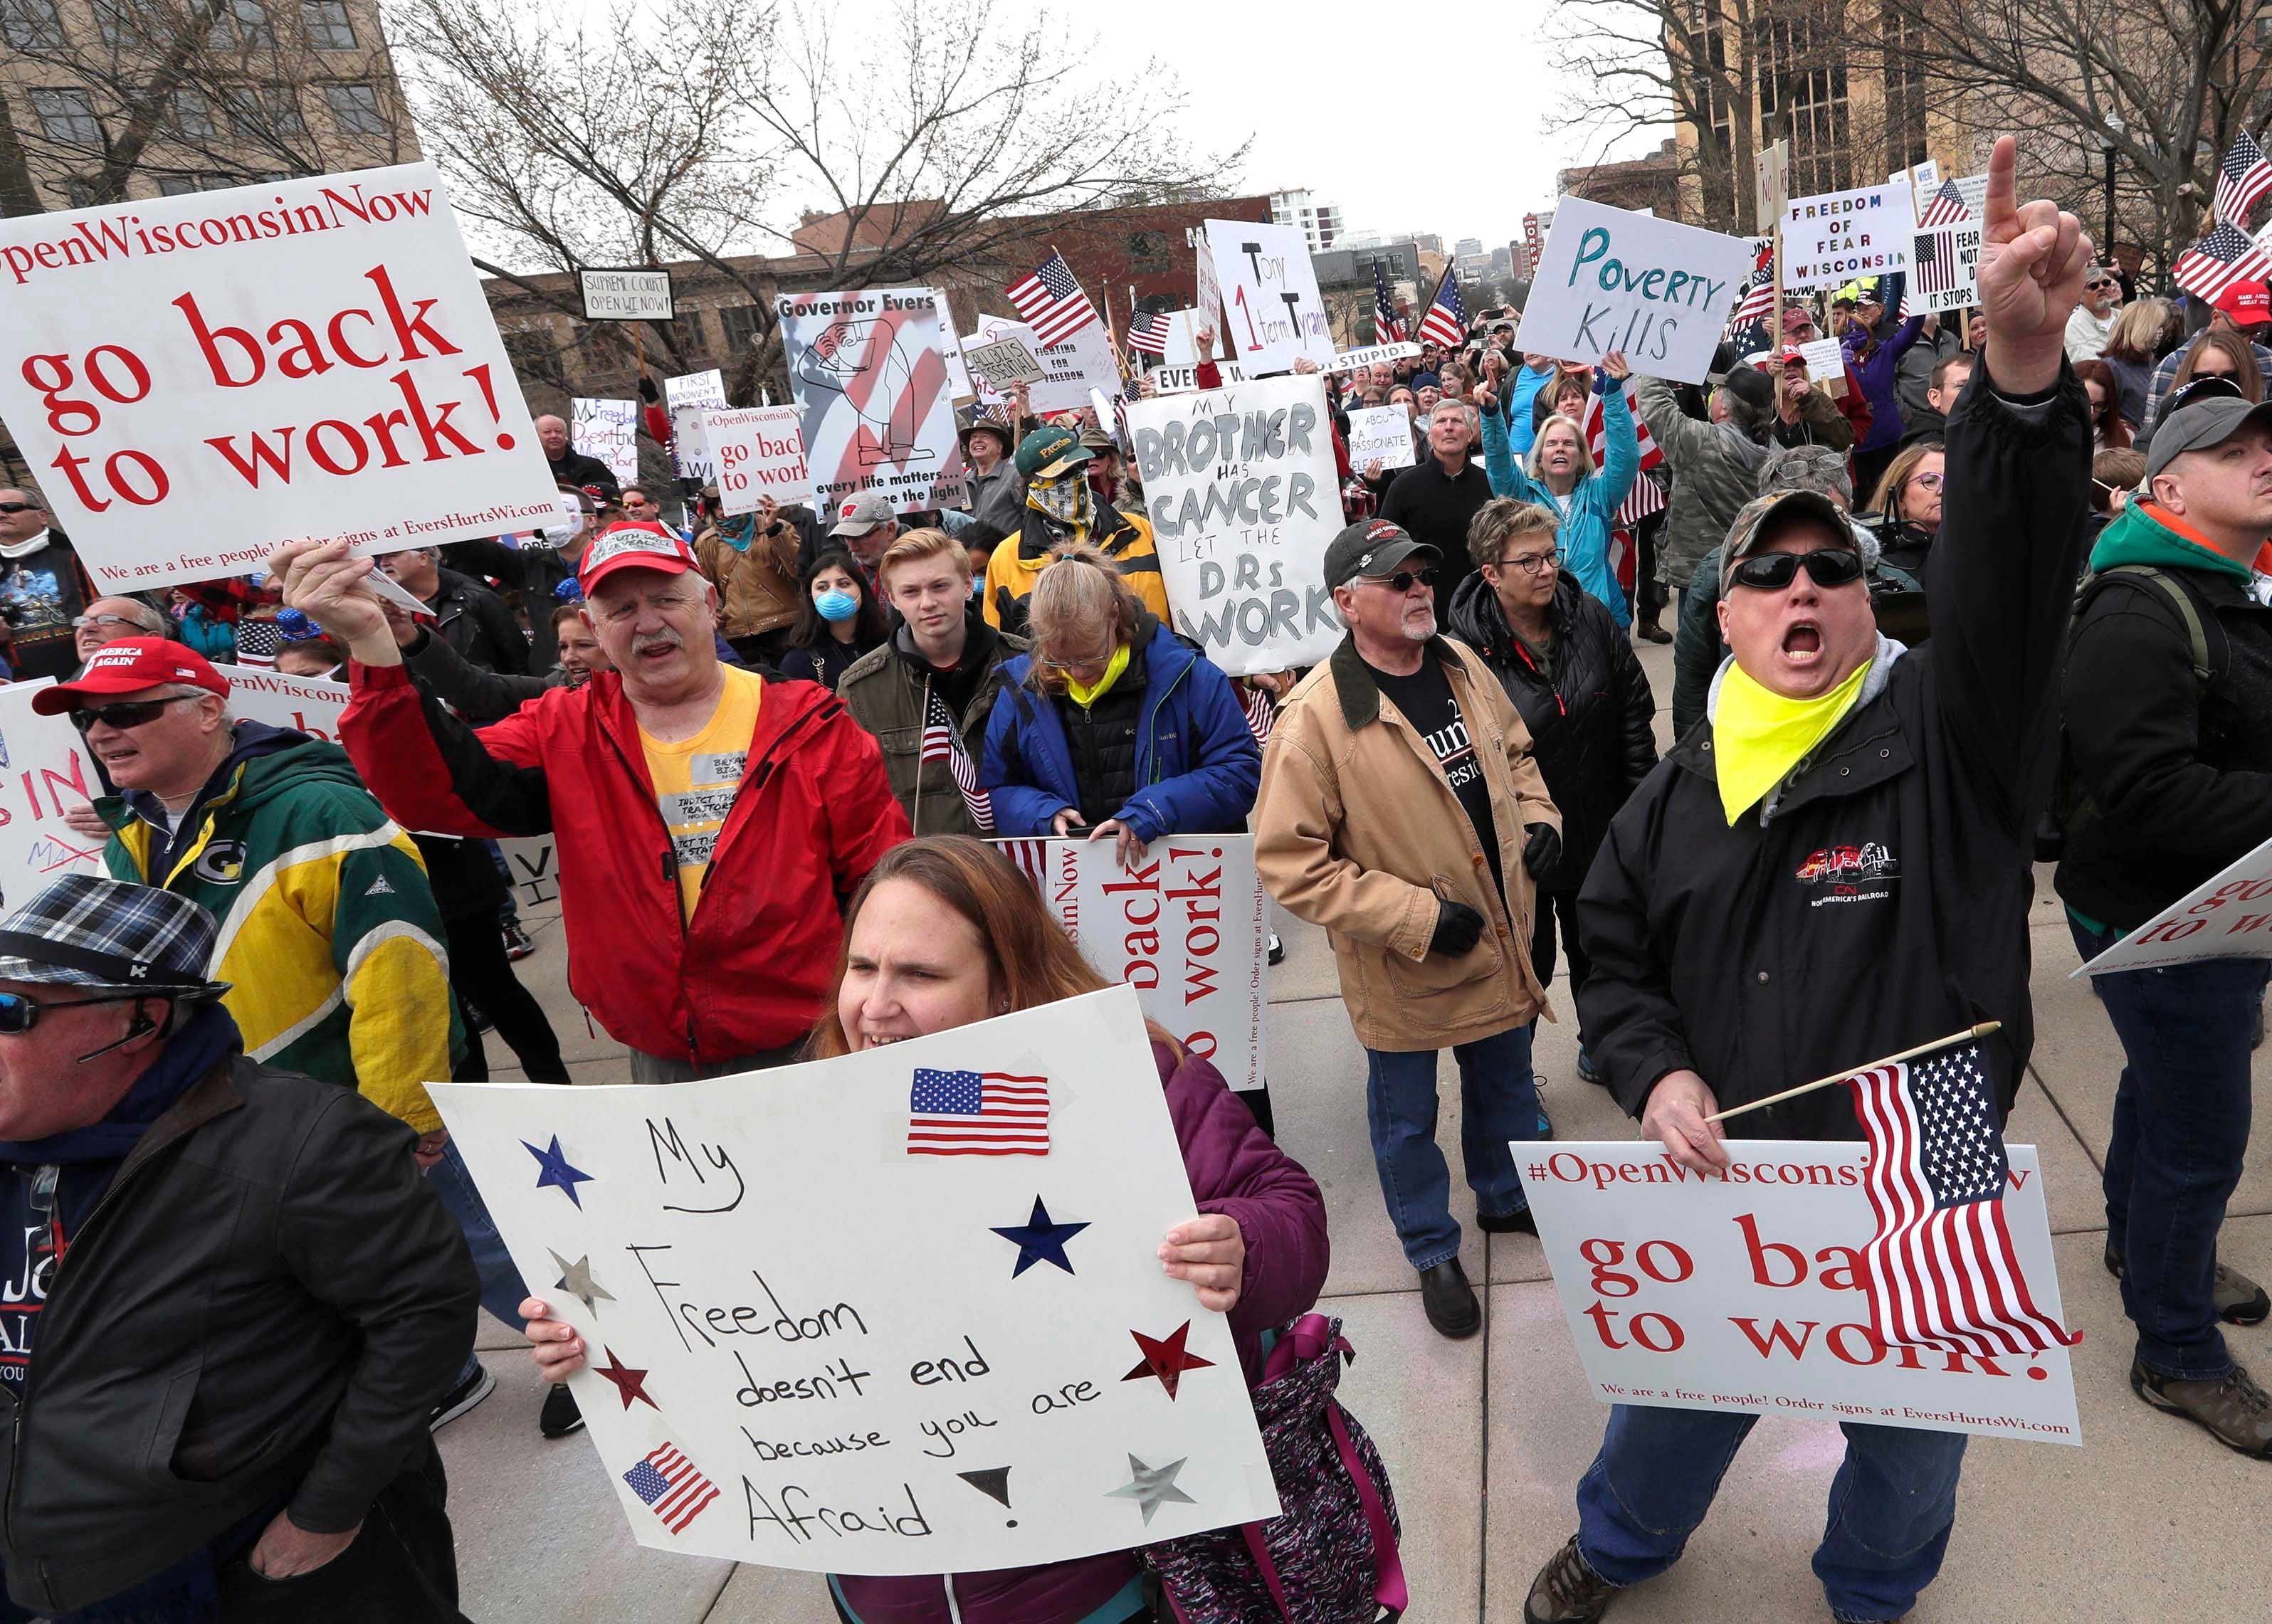 Protesters at the Wisconsin Capitol on April 24 call for the state to reopen, saying a stay-at-home order that closed schools, churches and non-essential businesses to prevent the spread of the coronavirus was causing economic damage.